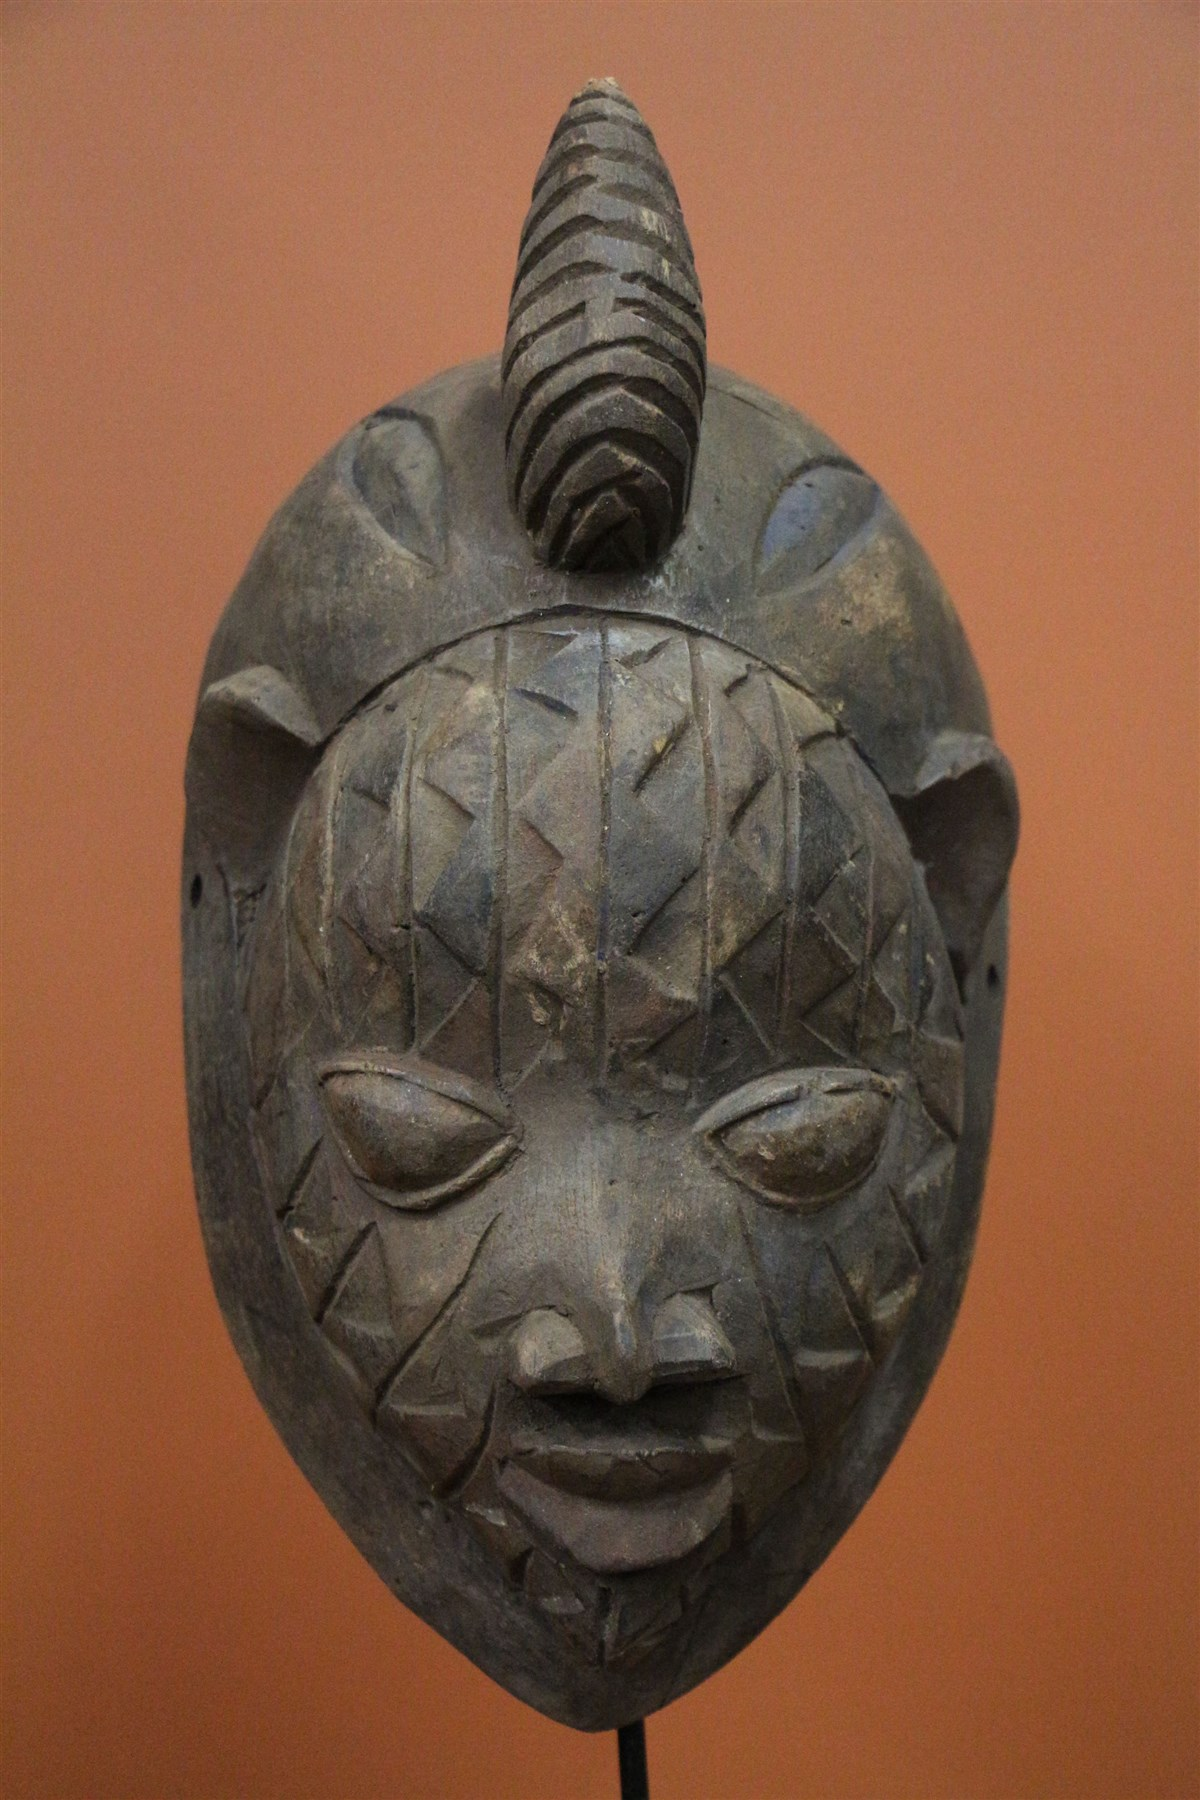 Masque Yoruba - Déco africaine - Art africain traditionnel